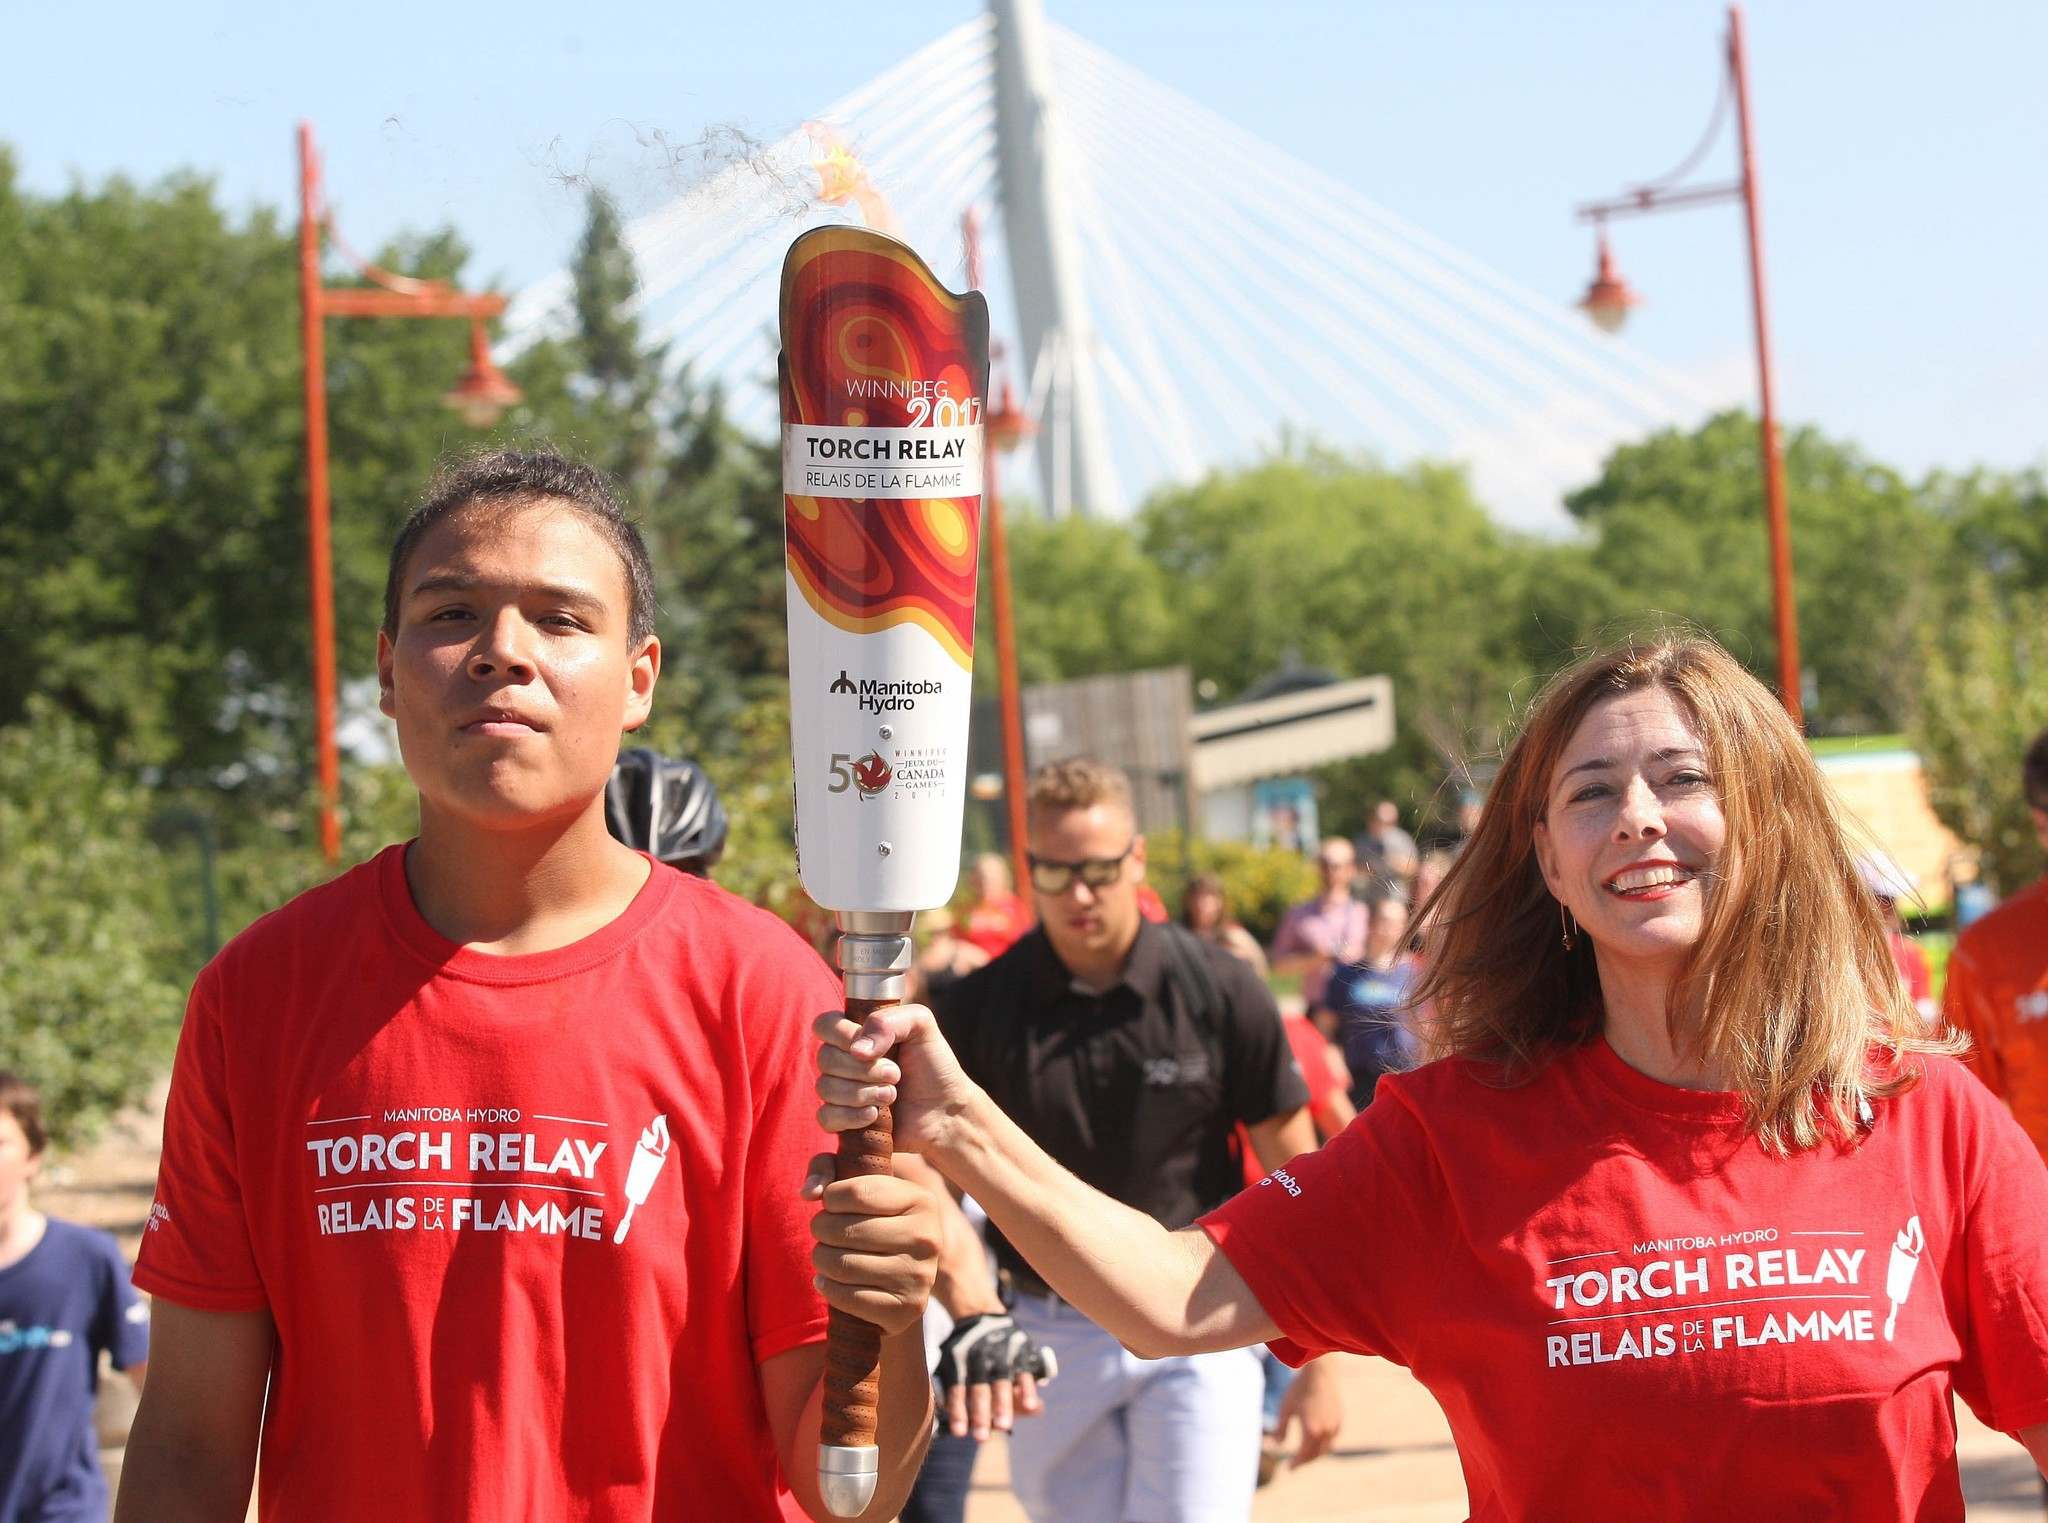 Jason Pruden (right) and Shannon Prud-Homme carry the Canada Games torch at The Forks. Jason, 14, was evacuated from his Lake St. Martin First Nation home due to flooding six years ago. Prud-Homme, a family doctor from Treherne, carried the torch for Fit Kids, Healthy Kids, an organziation sponsored by Doctors Manitoba. (Joe Bryksa / Winnipeg Free Press)</p>